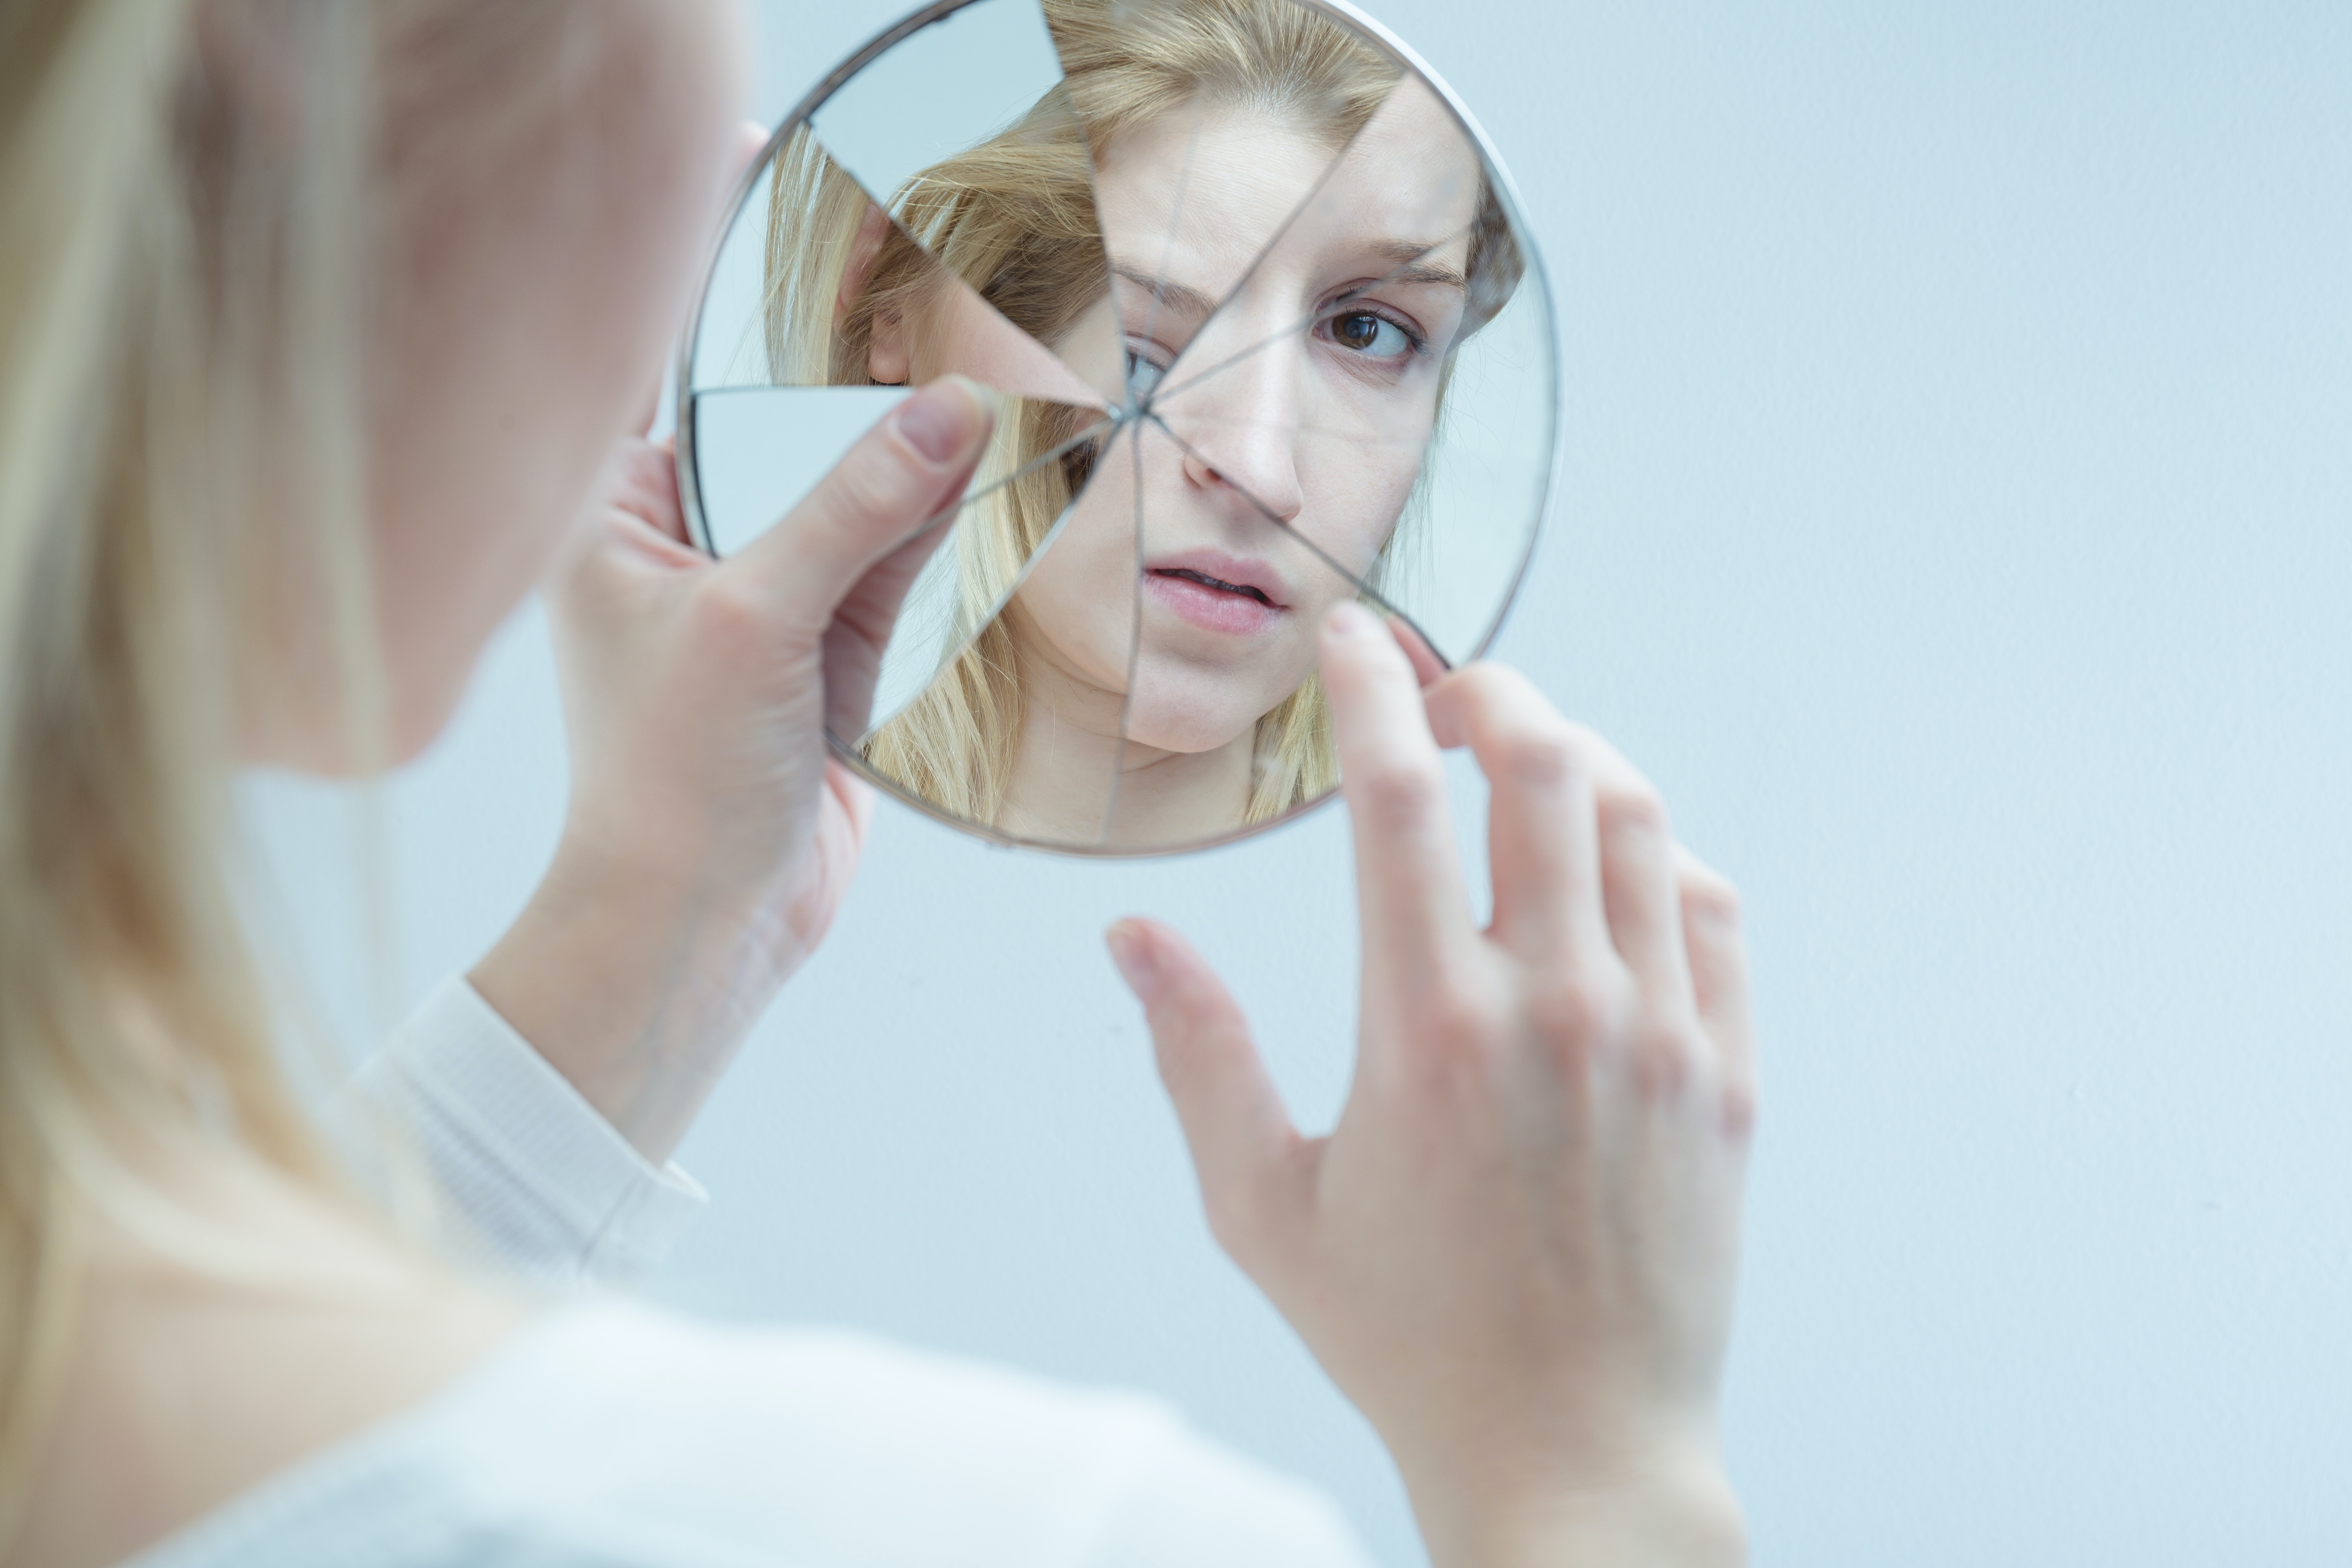 An image depicting a person suffering from Borderline Personality Disorder symptoms